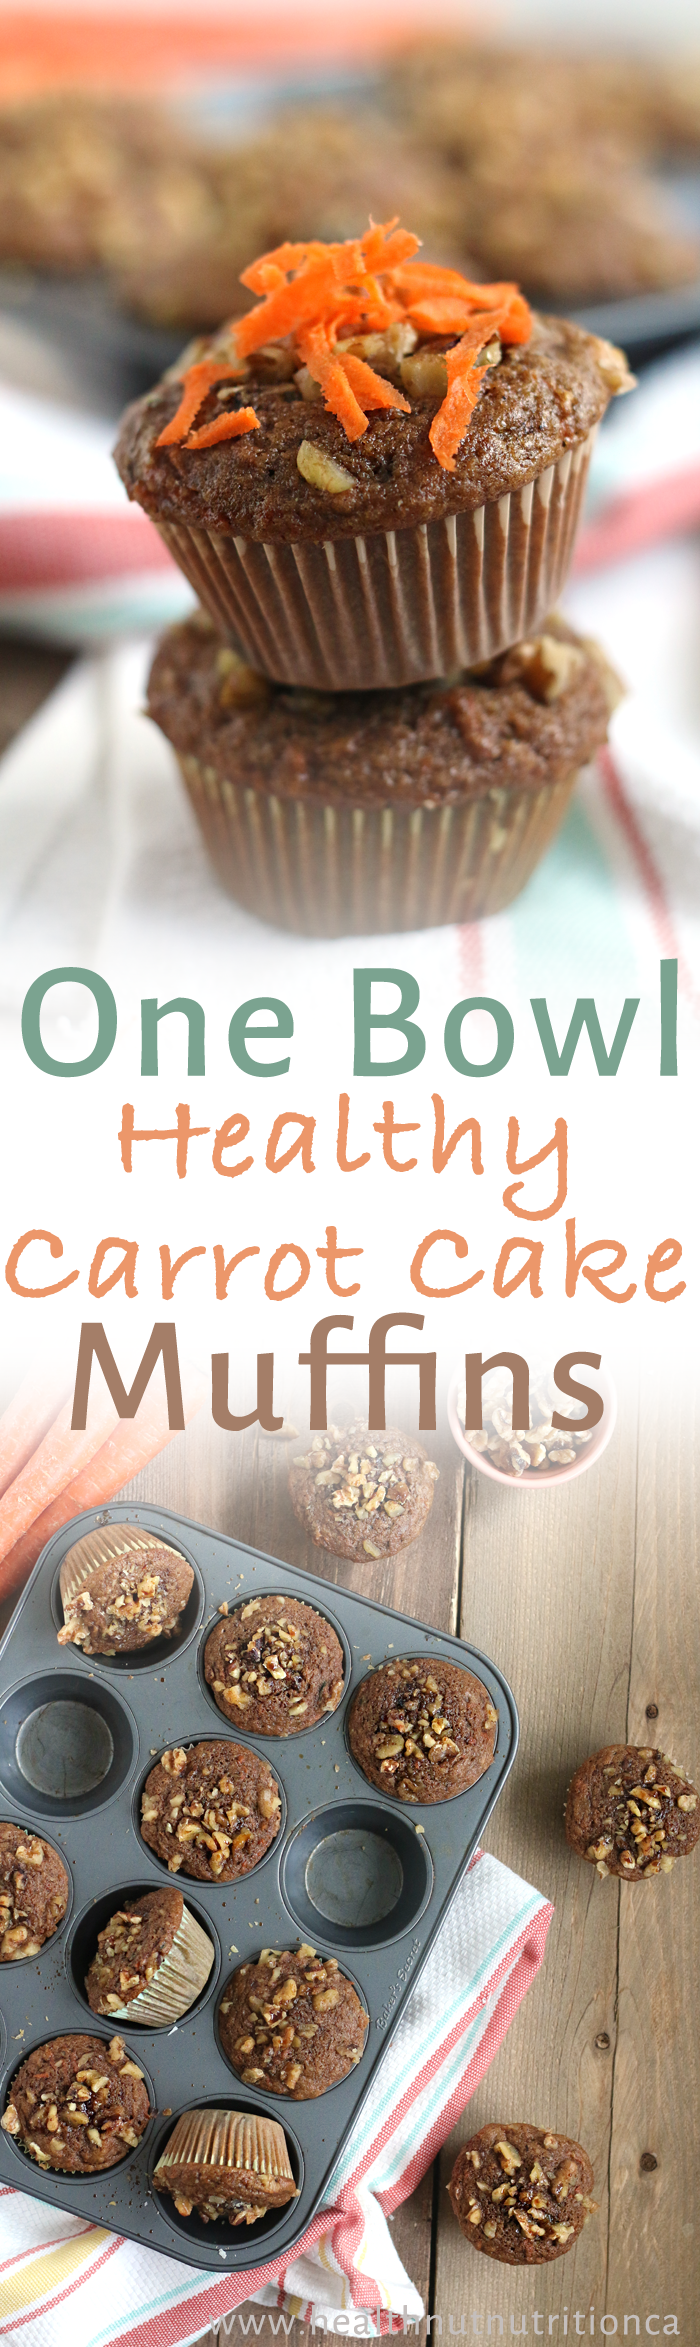 Healthy 1-Bowl Carrot Cake Muffins ready in 30 min! HealthNut Nutrition